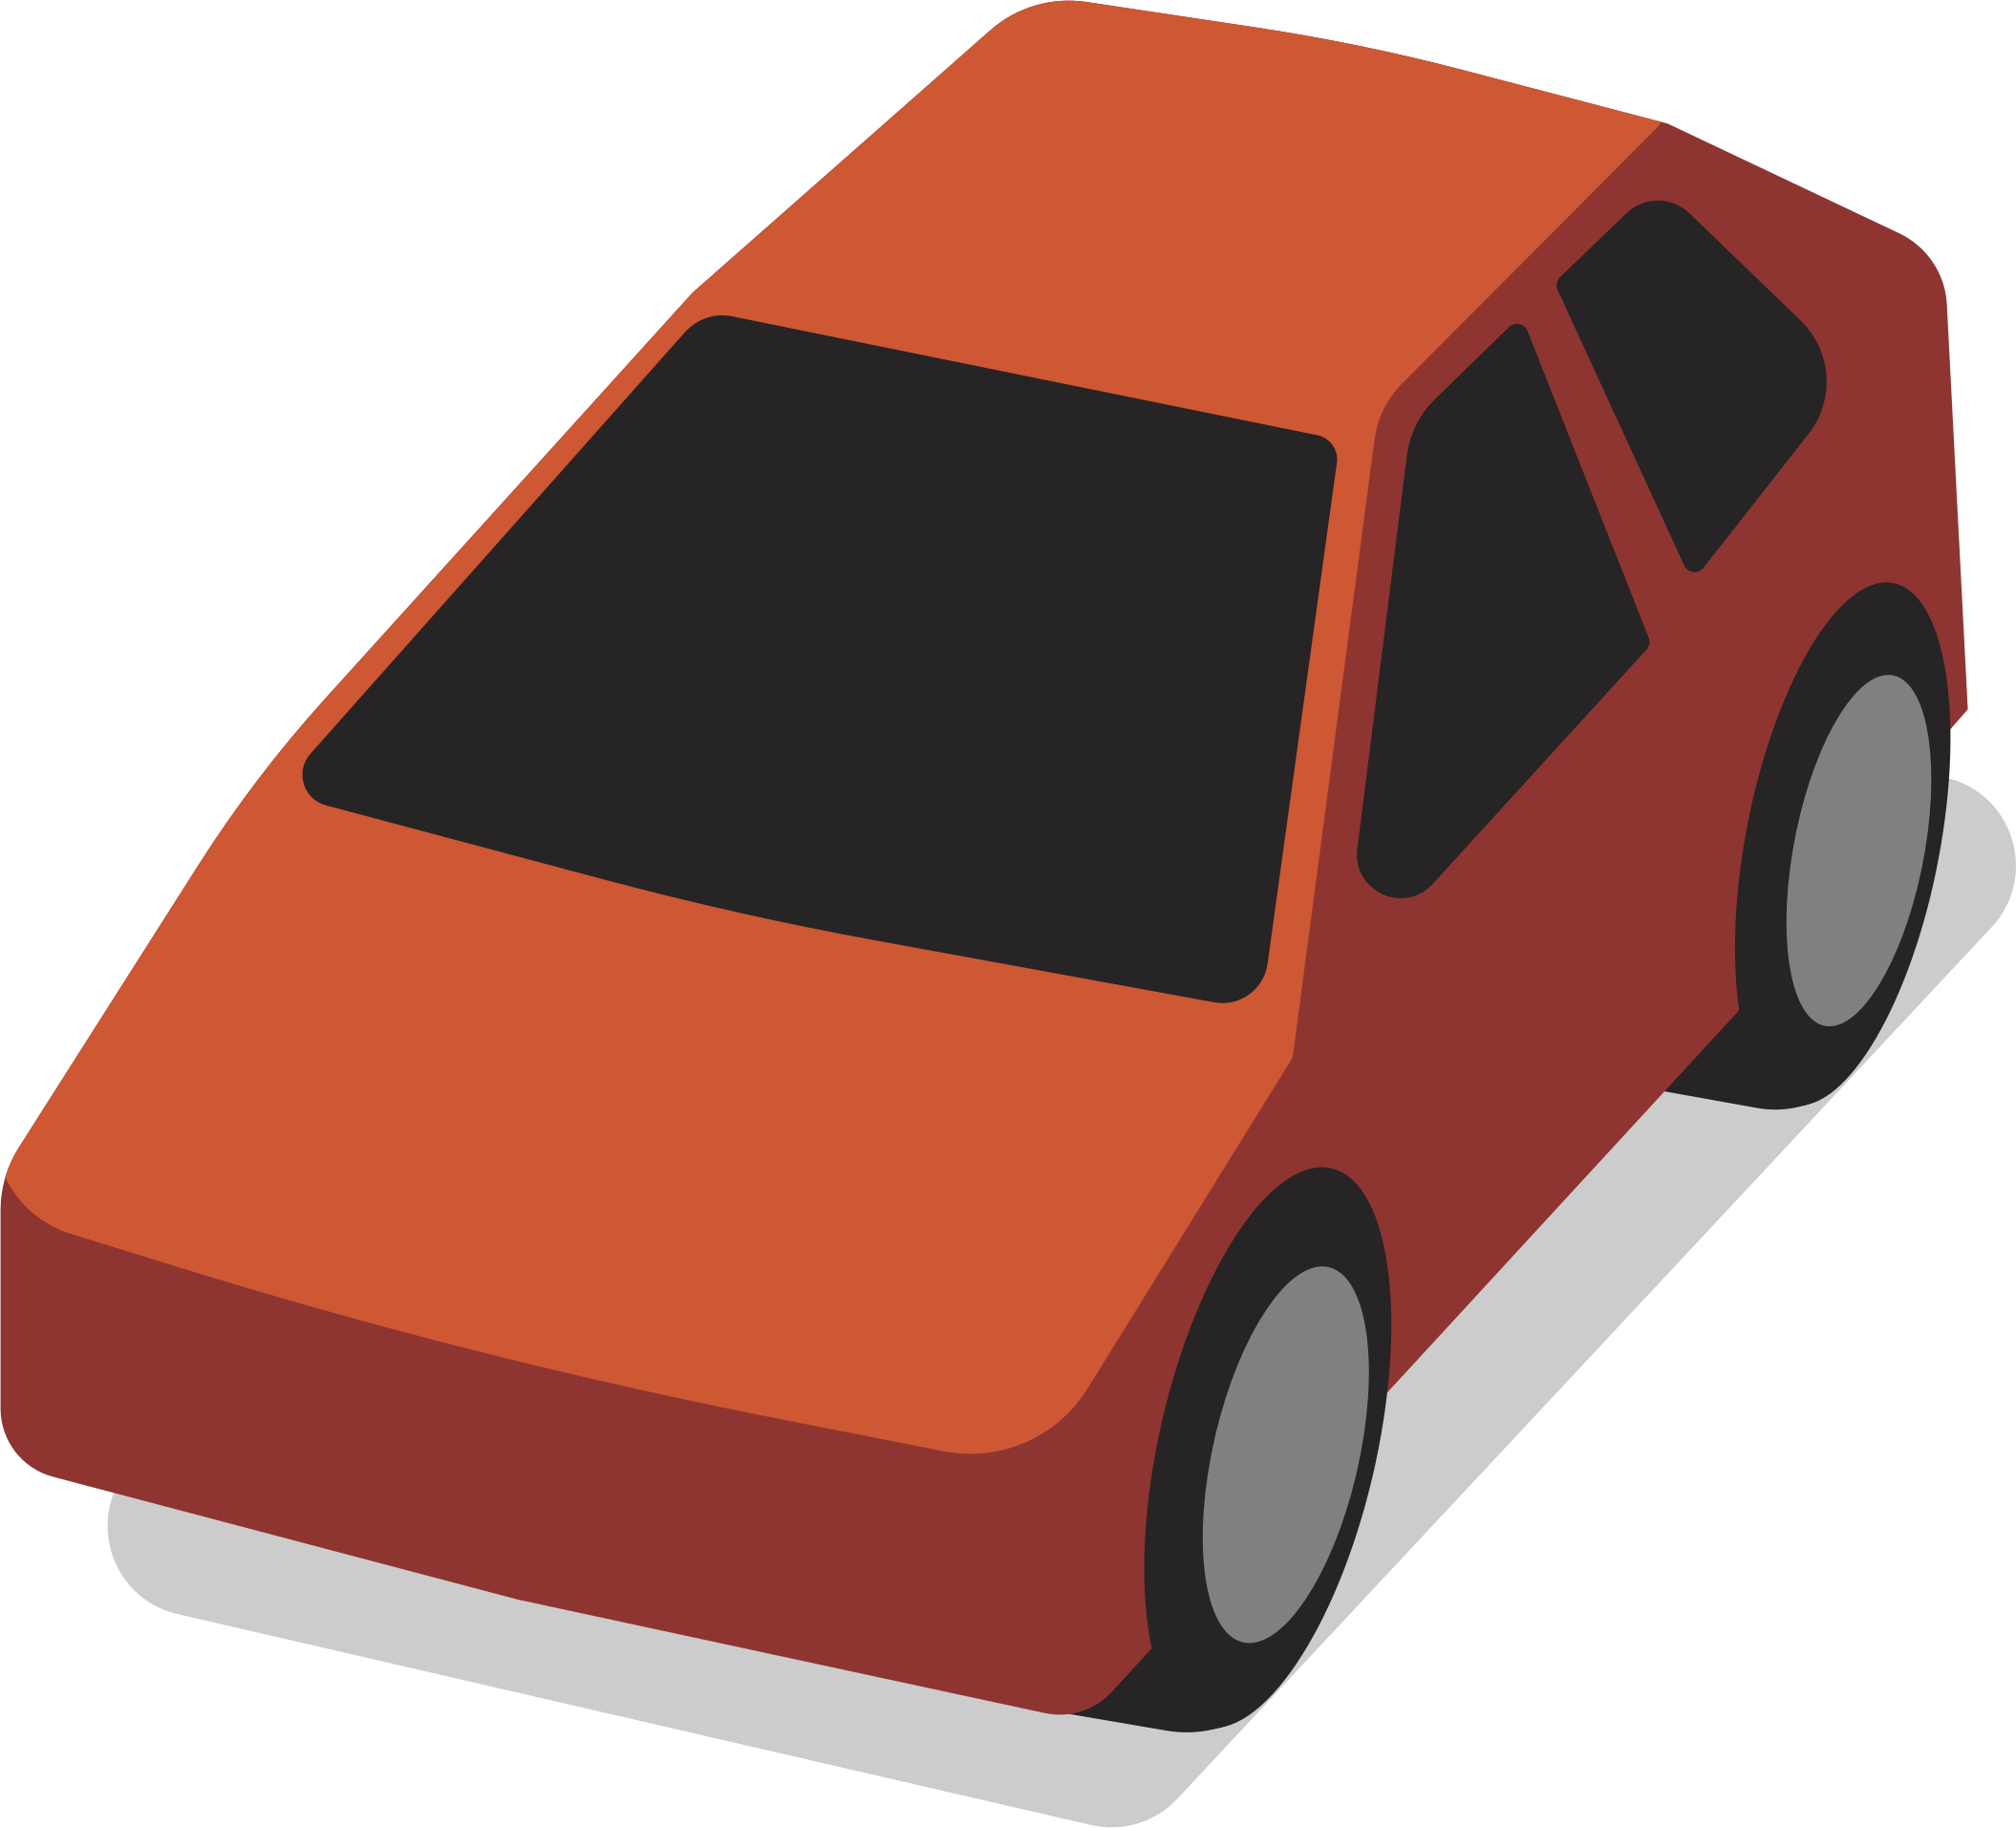 Clipart cars simple. Generic car png download